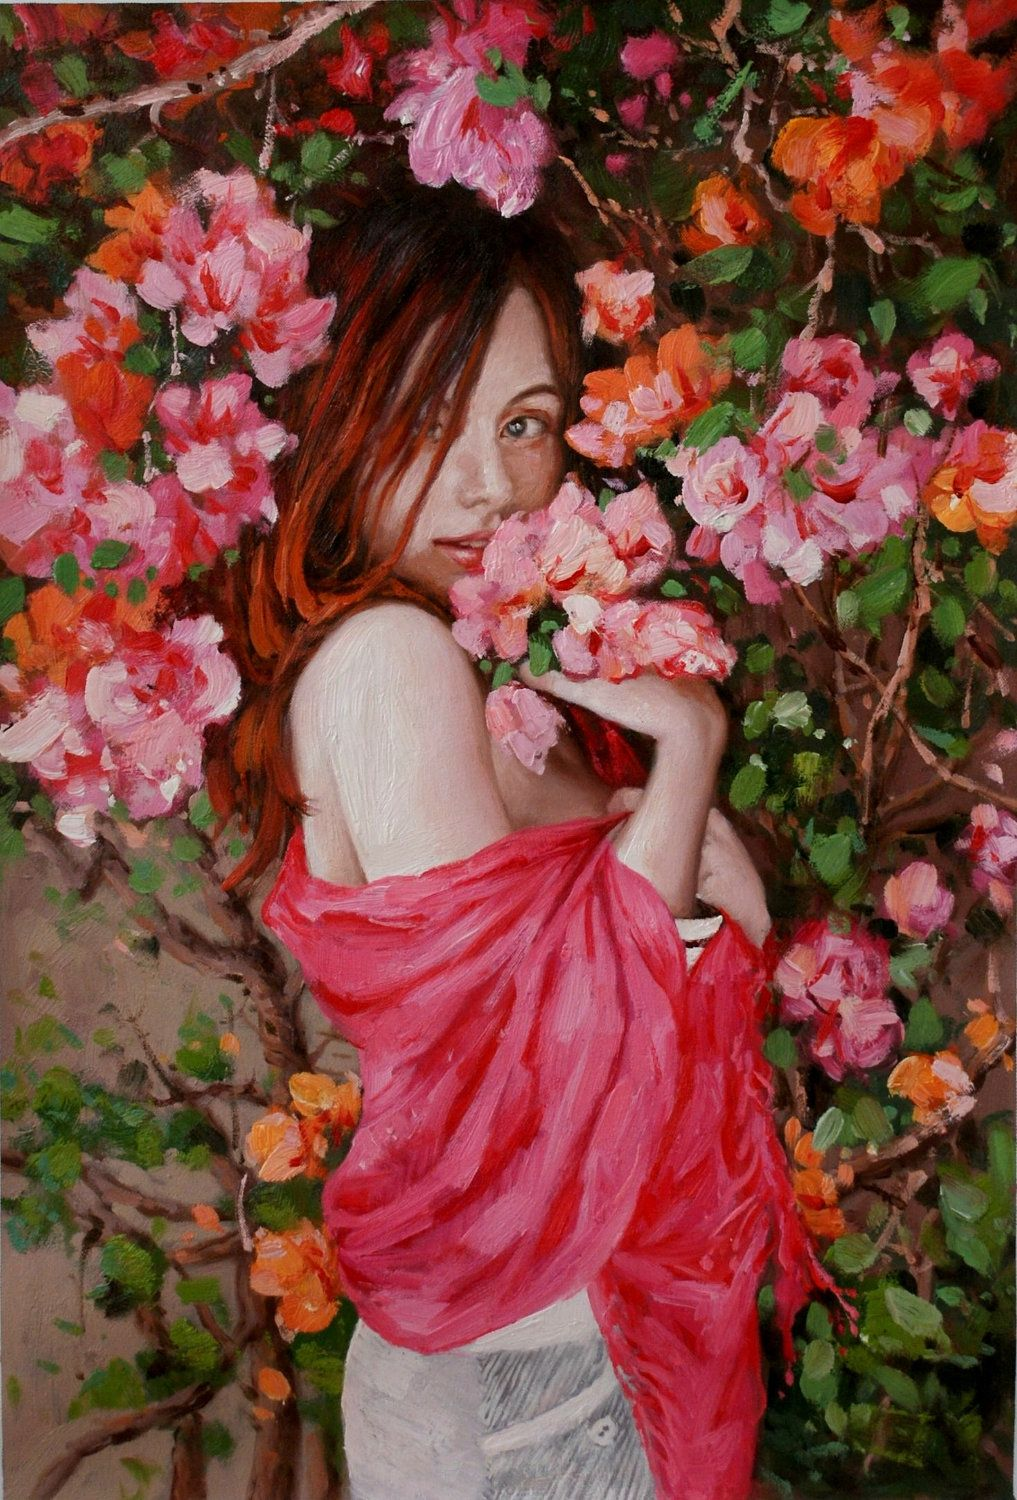 Girl & Bougainvillea, Flower, Lady, Woman, Portrait